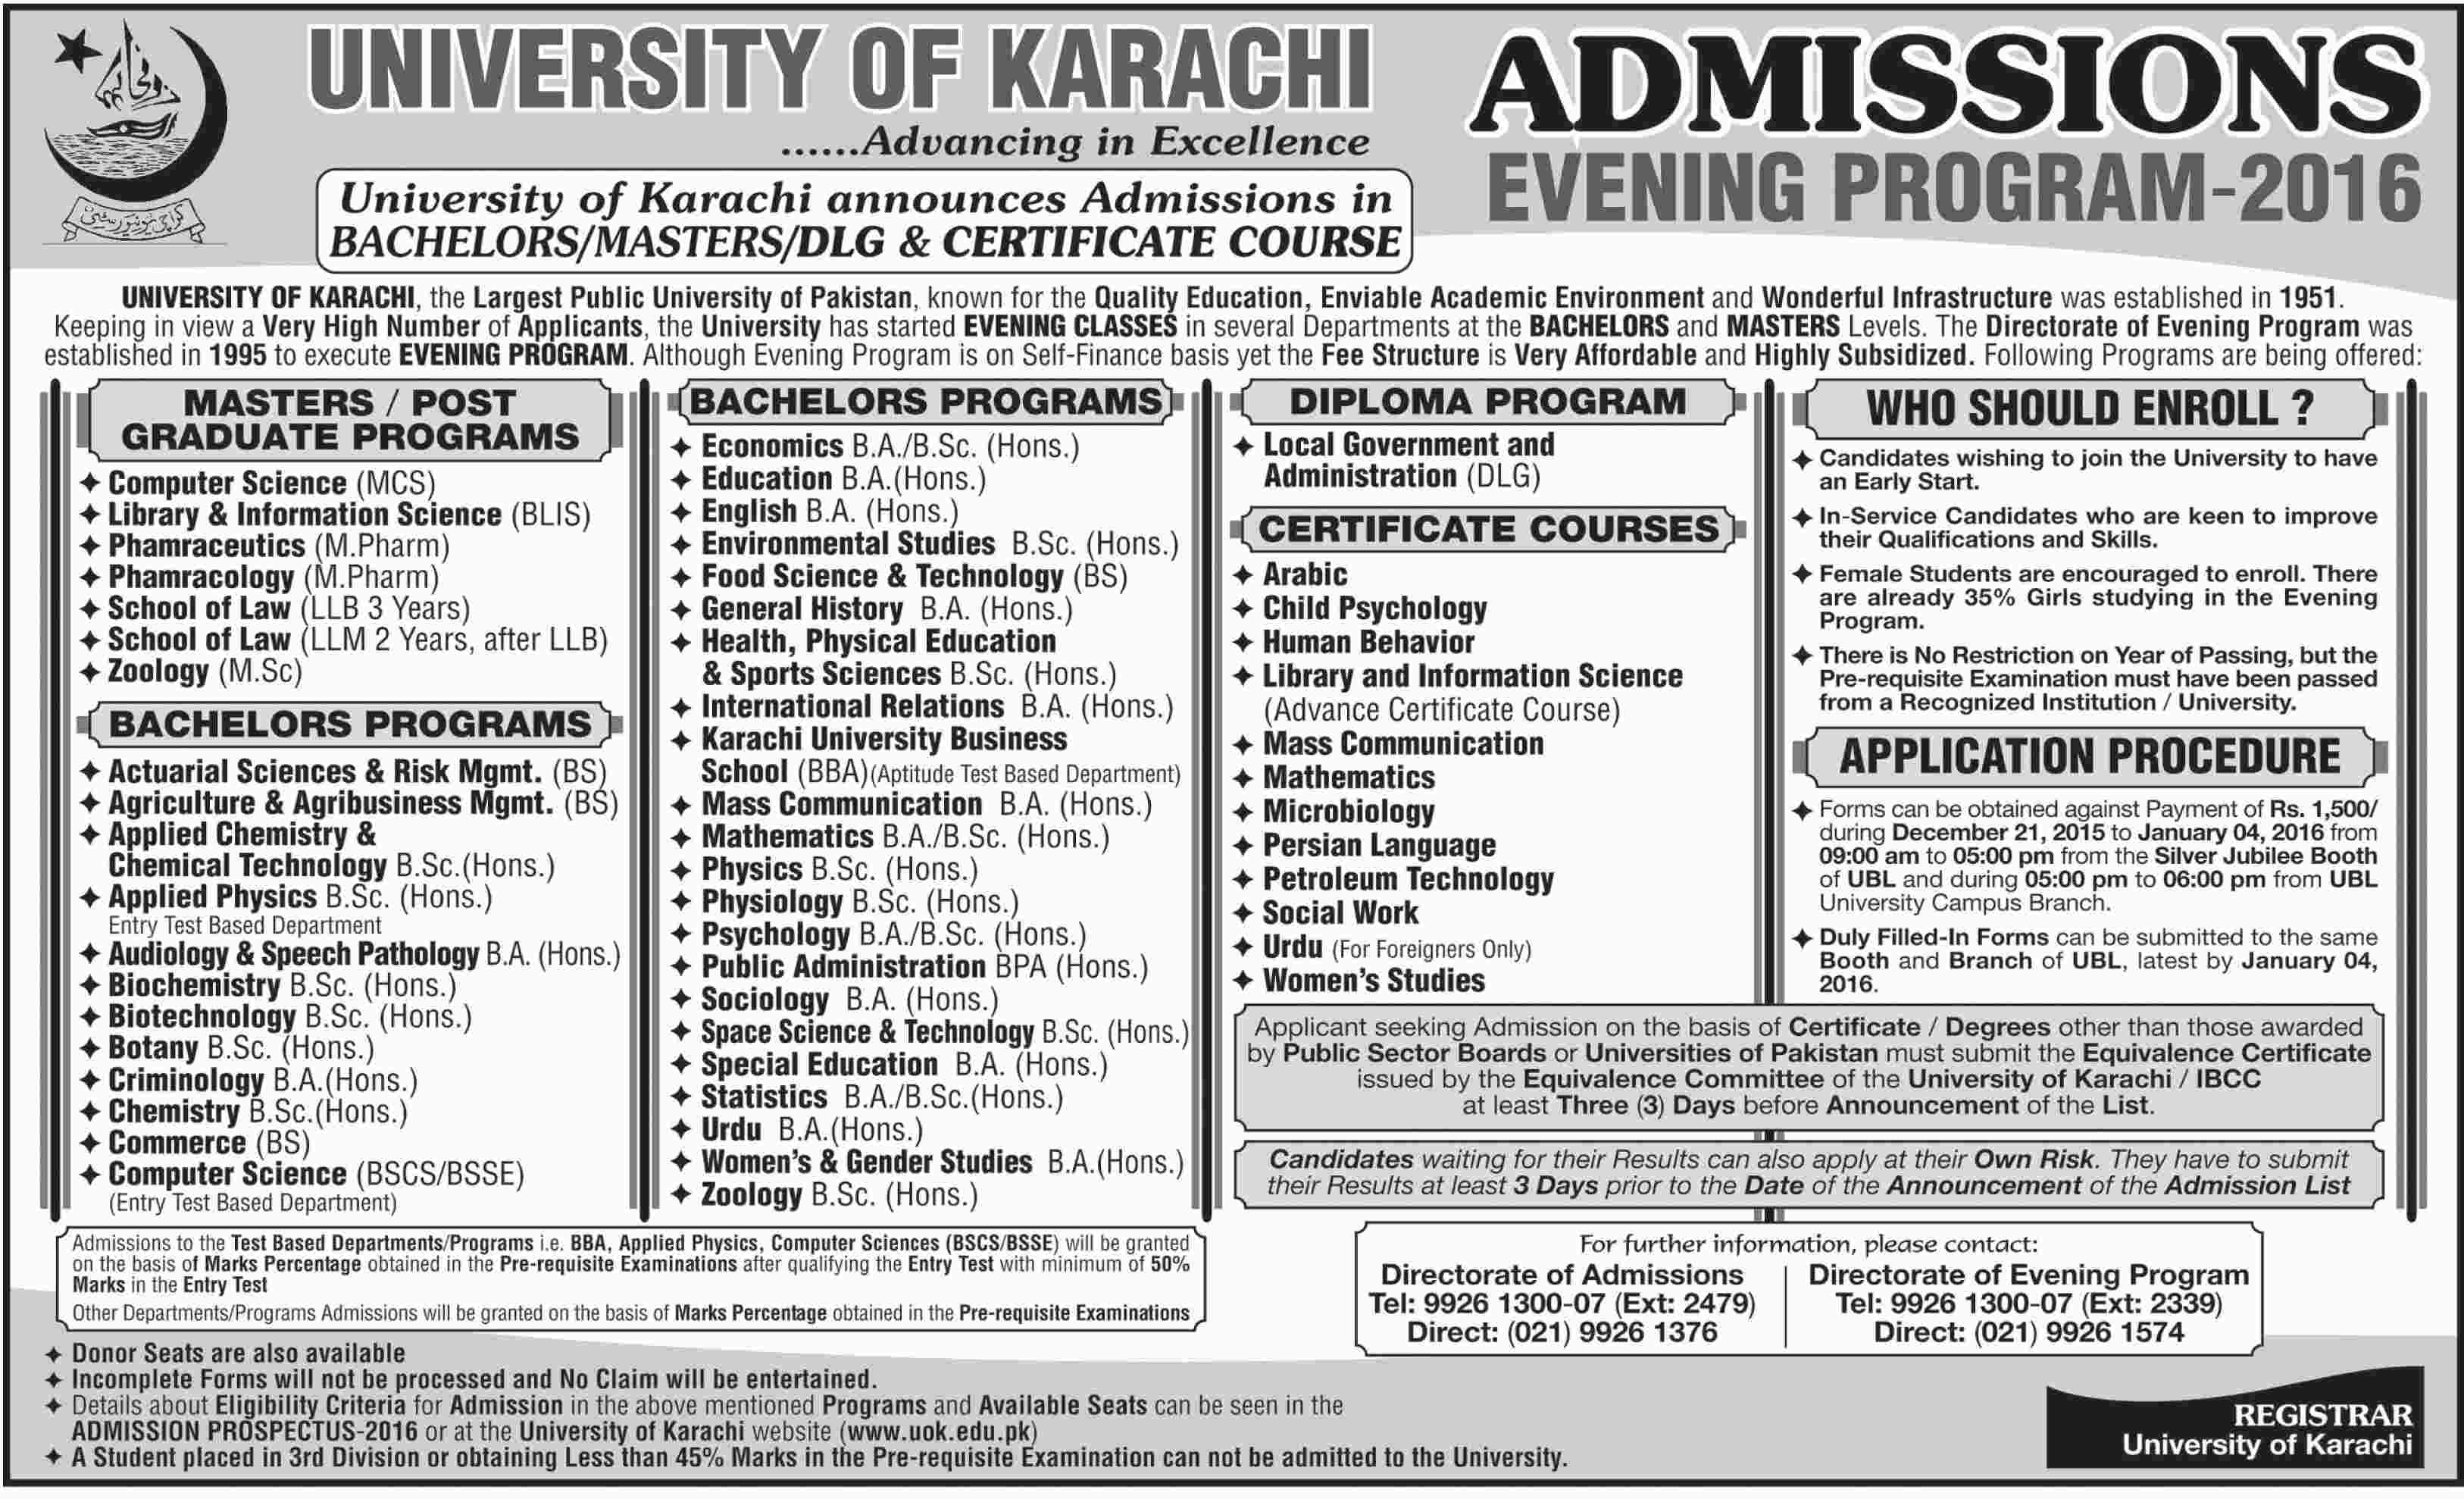 University Of Karachi UOK Evening Program Admission 2016